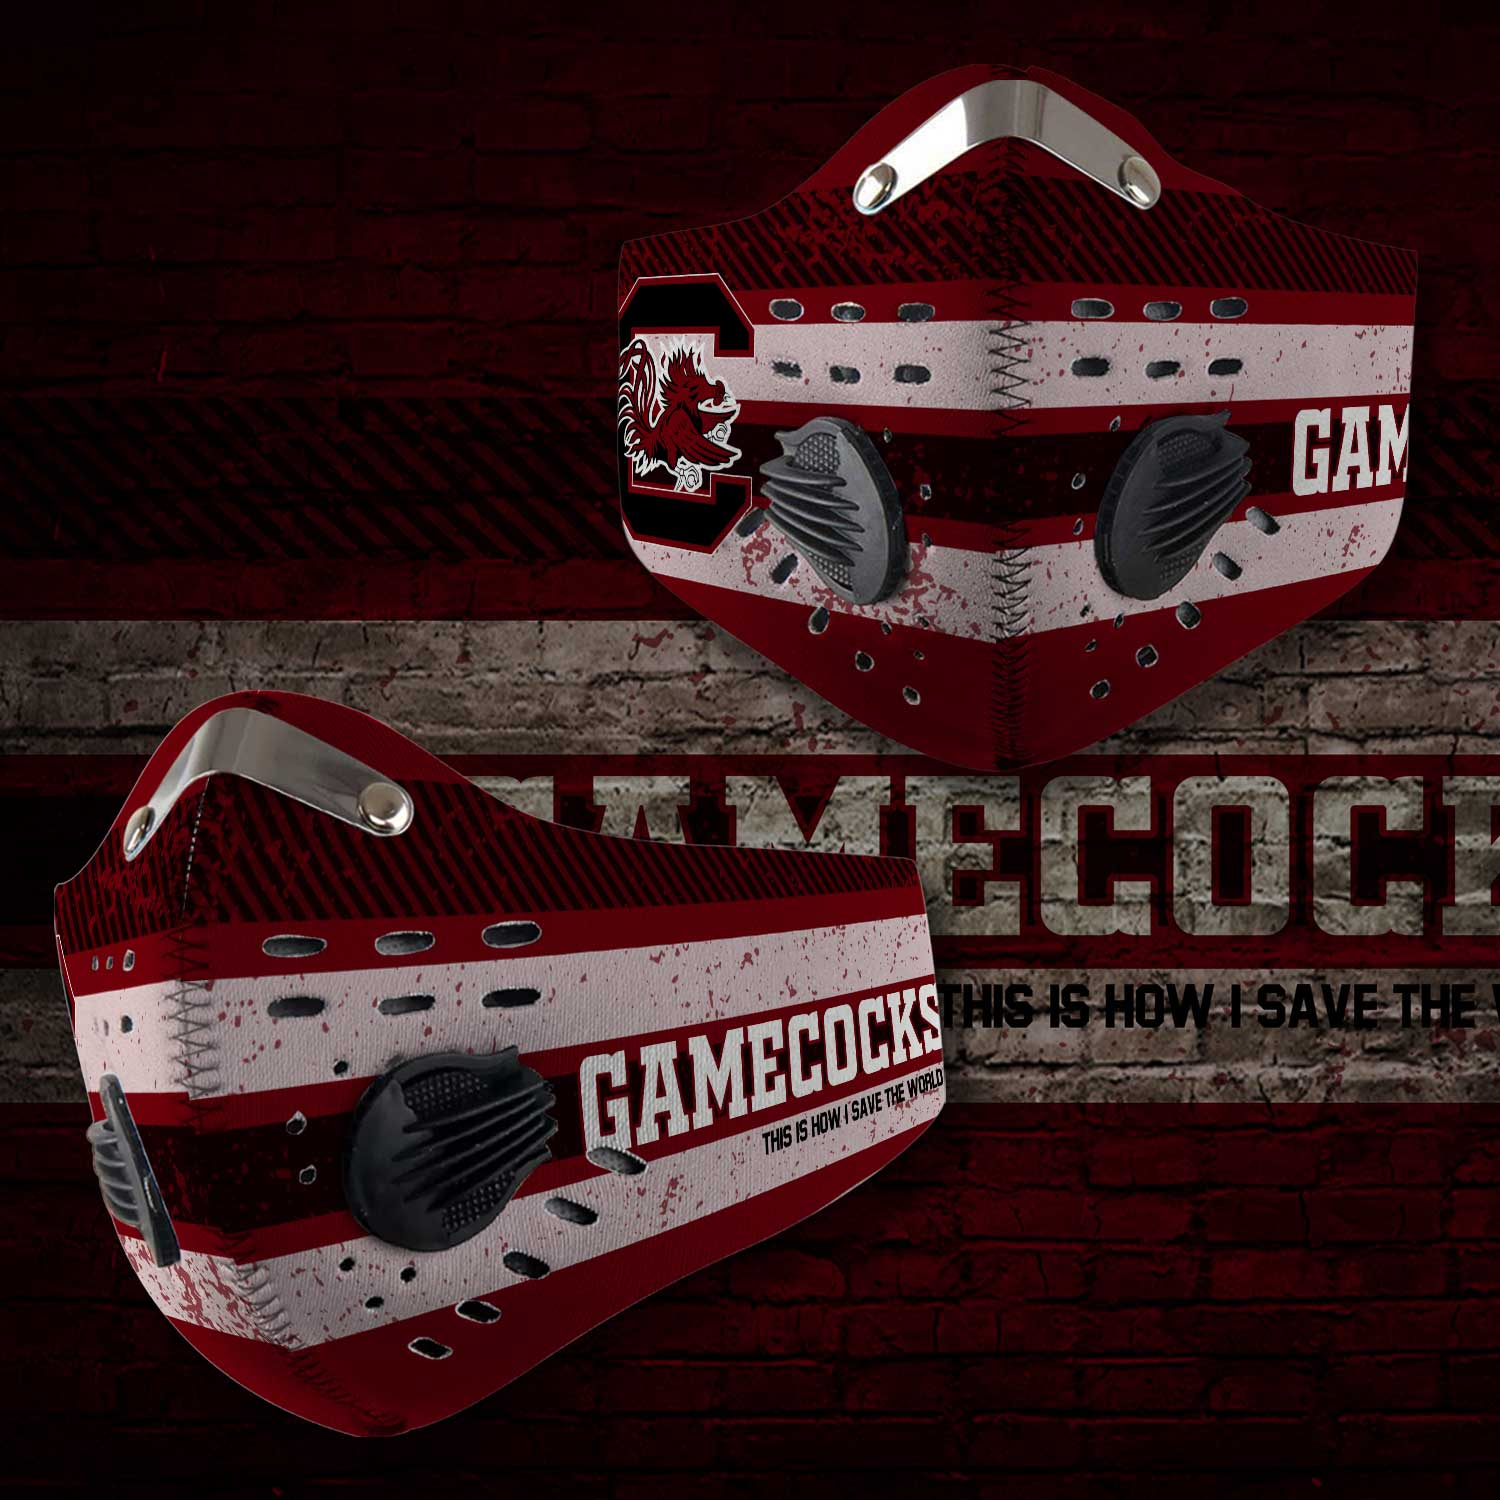 South carolina gamecocks this is how i save the world face mask 2